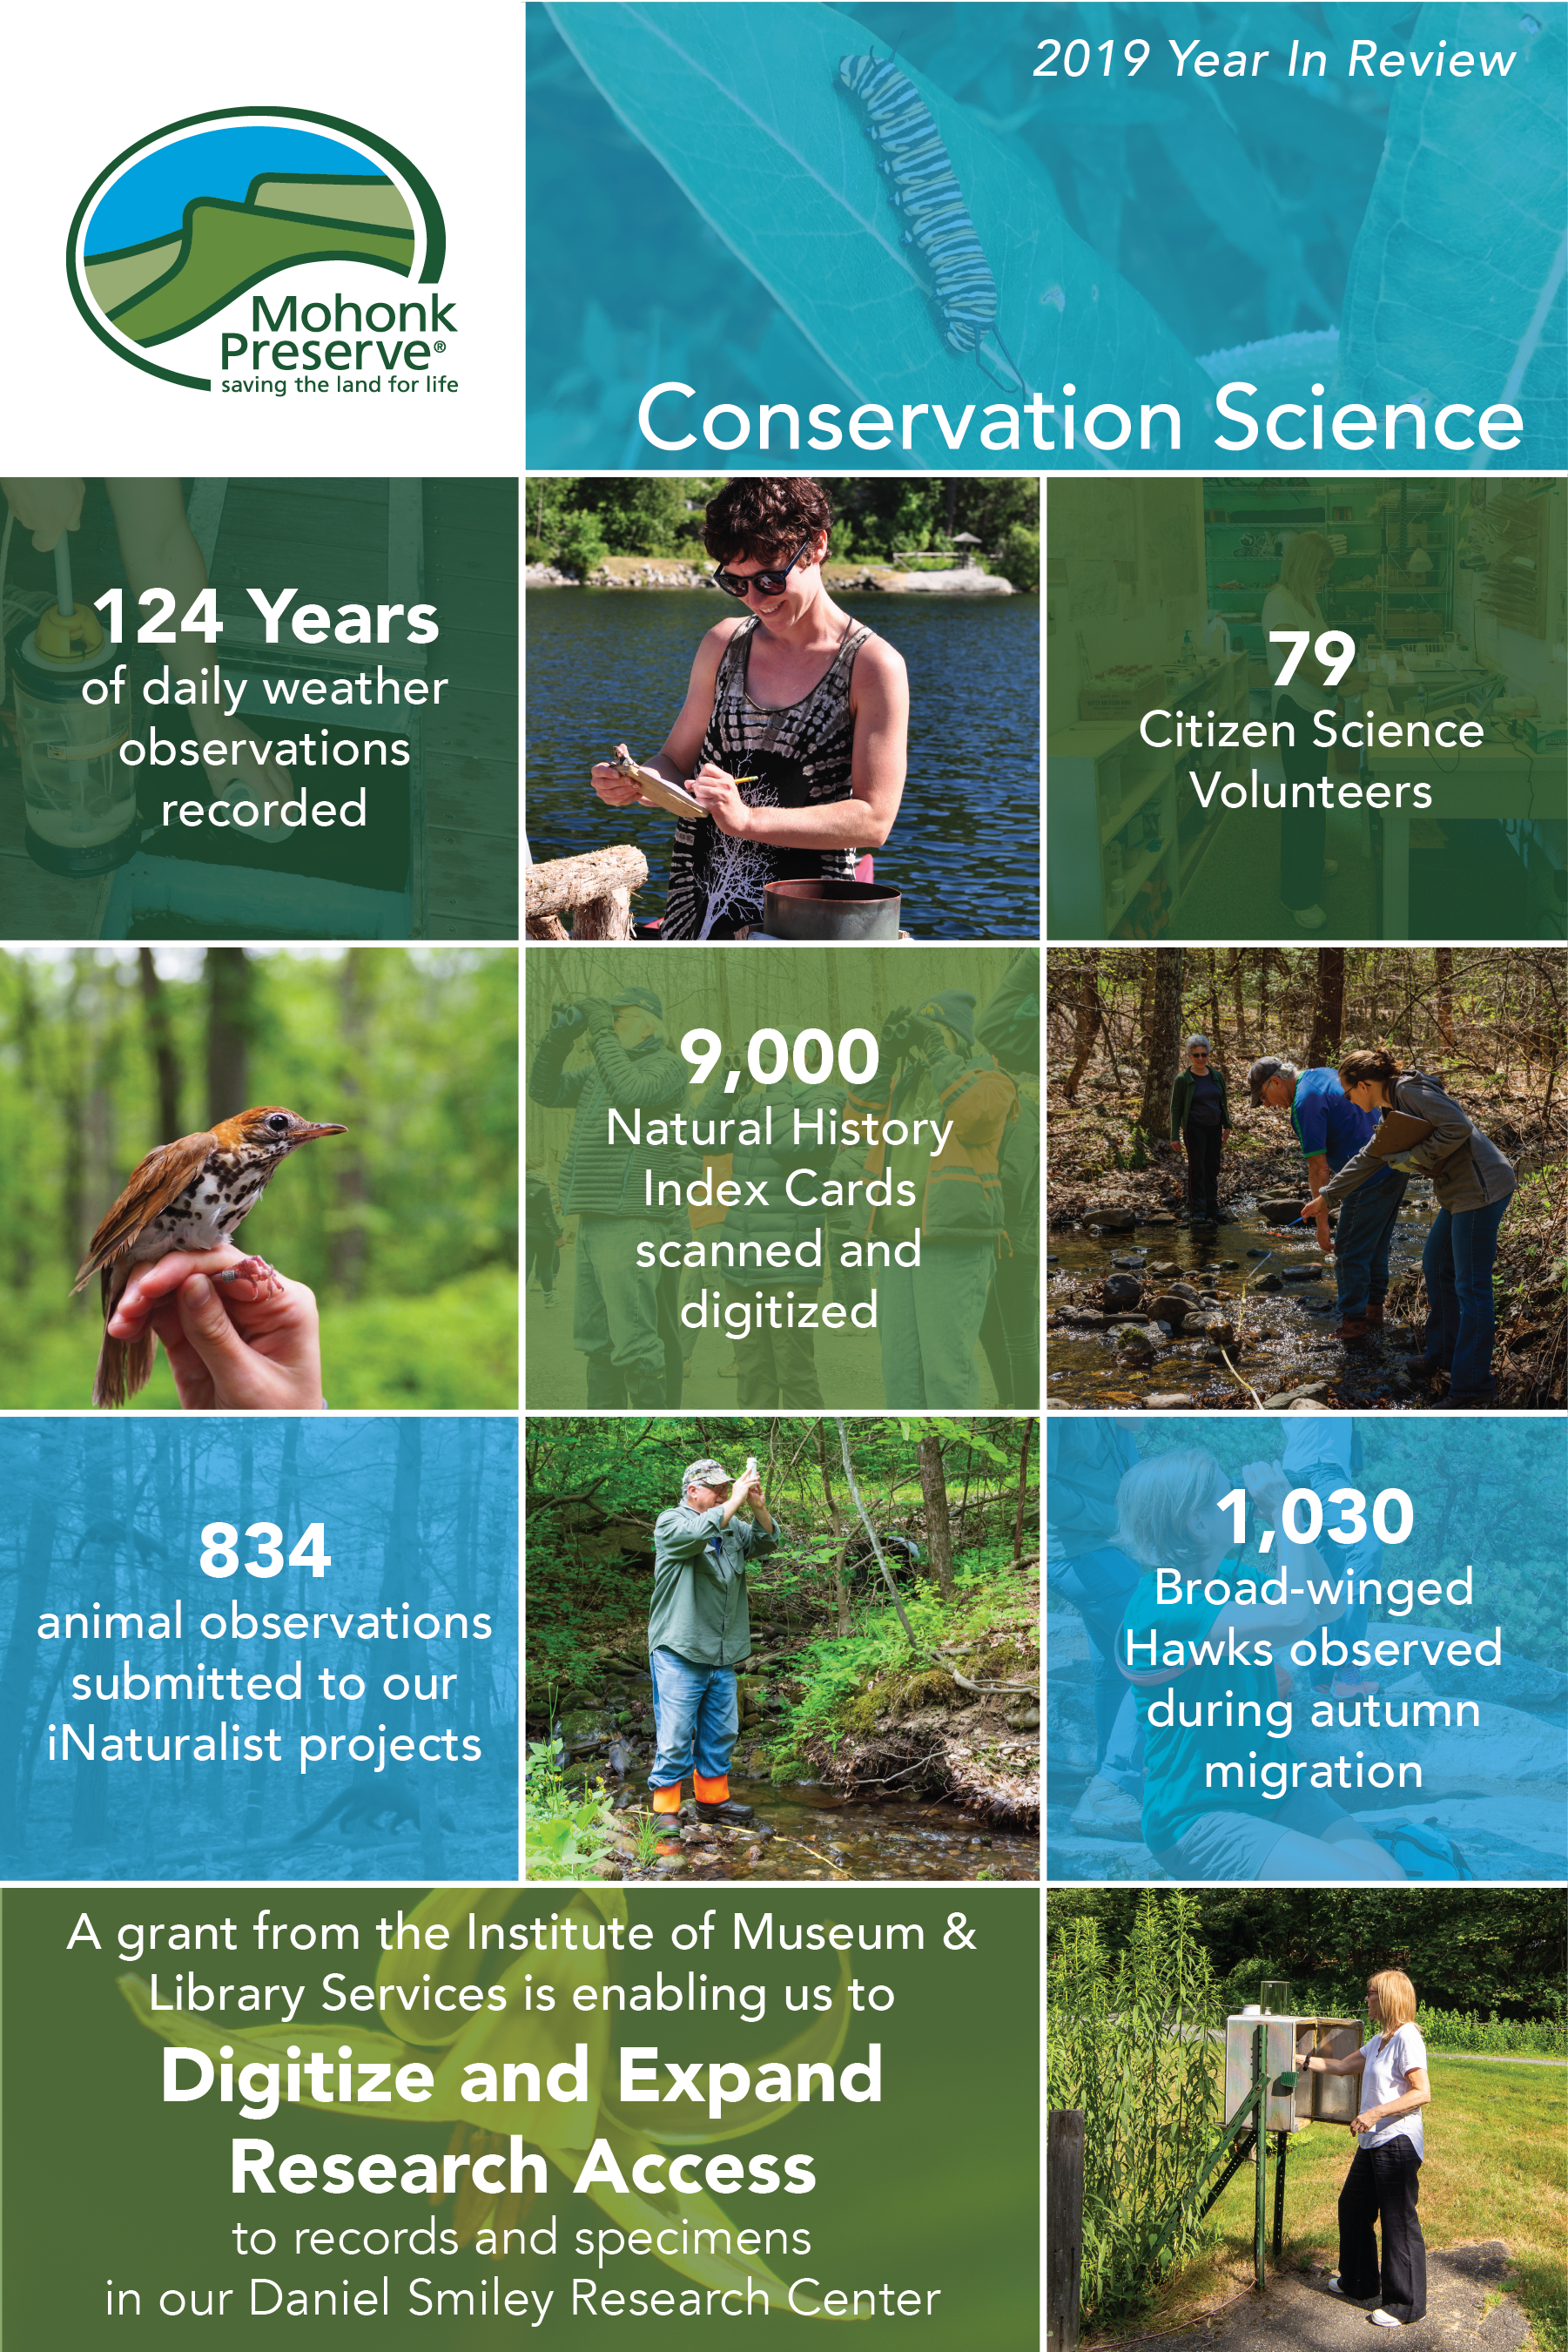 2019 Year In Review: Conservation Science, 124 years of daily weather observations recorded, 79 citizen science volunteers, 9,000 Natural history index cards scanned and digitized, 834 animal observations submitted to our iNaturalist projects, 1,030 broad-winged hawks observed during autumn migration, A grant from the Institute of Museum & Library Services is enabling us to Digitize and Expand Research Access to records and specimens in our Daniel Smiley Research Center.